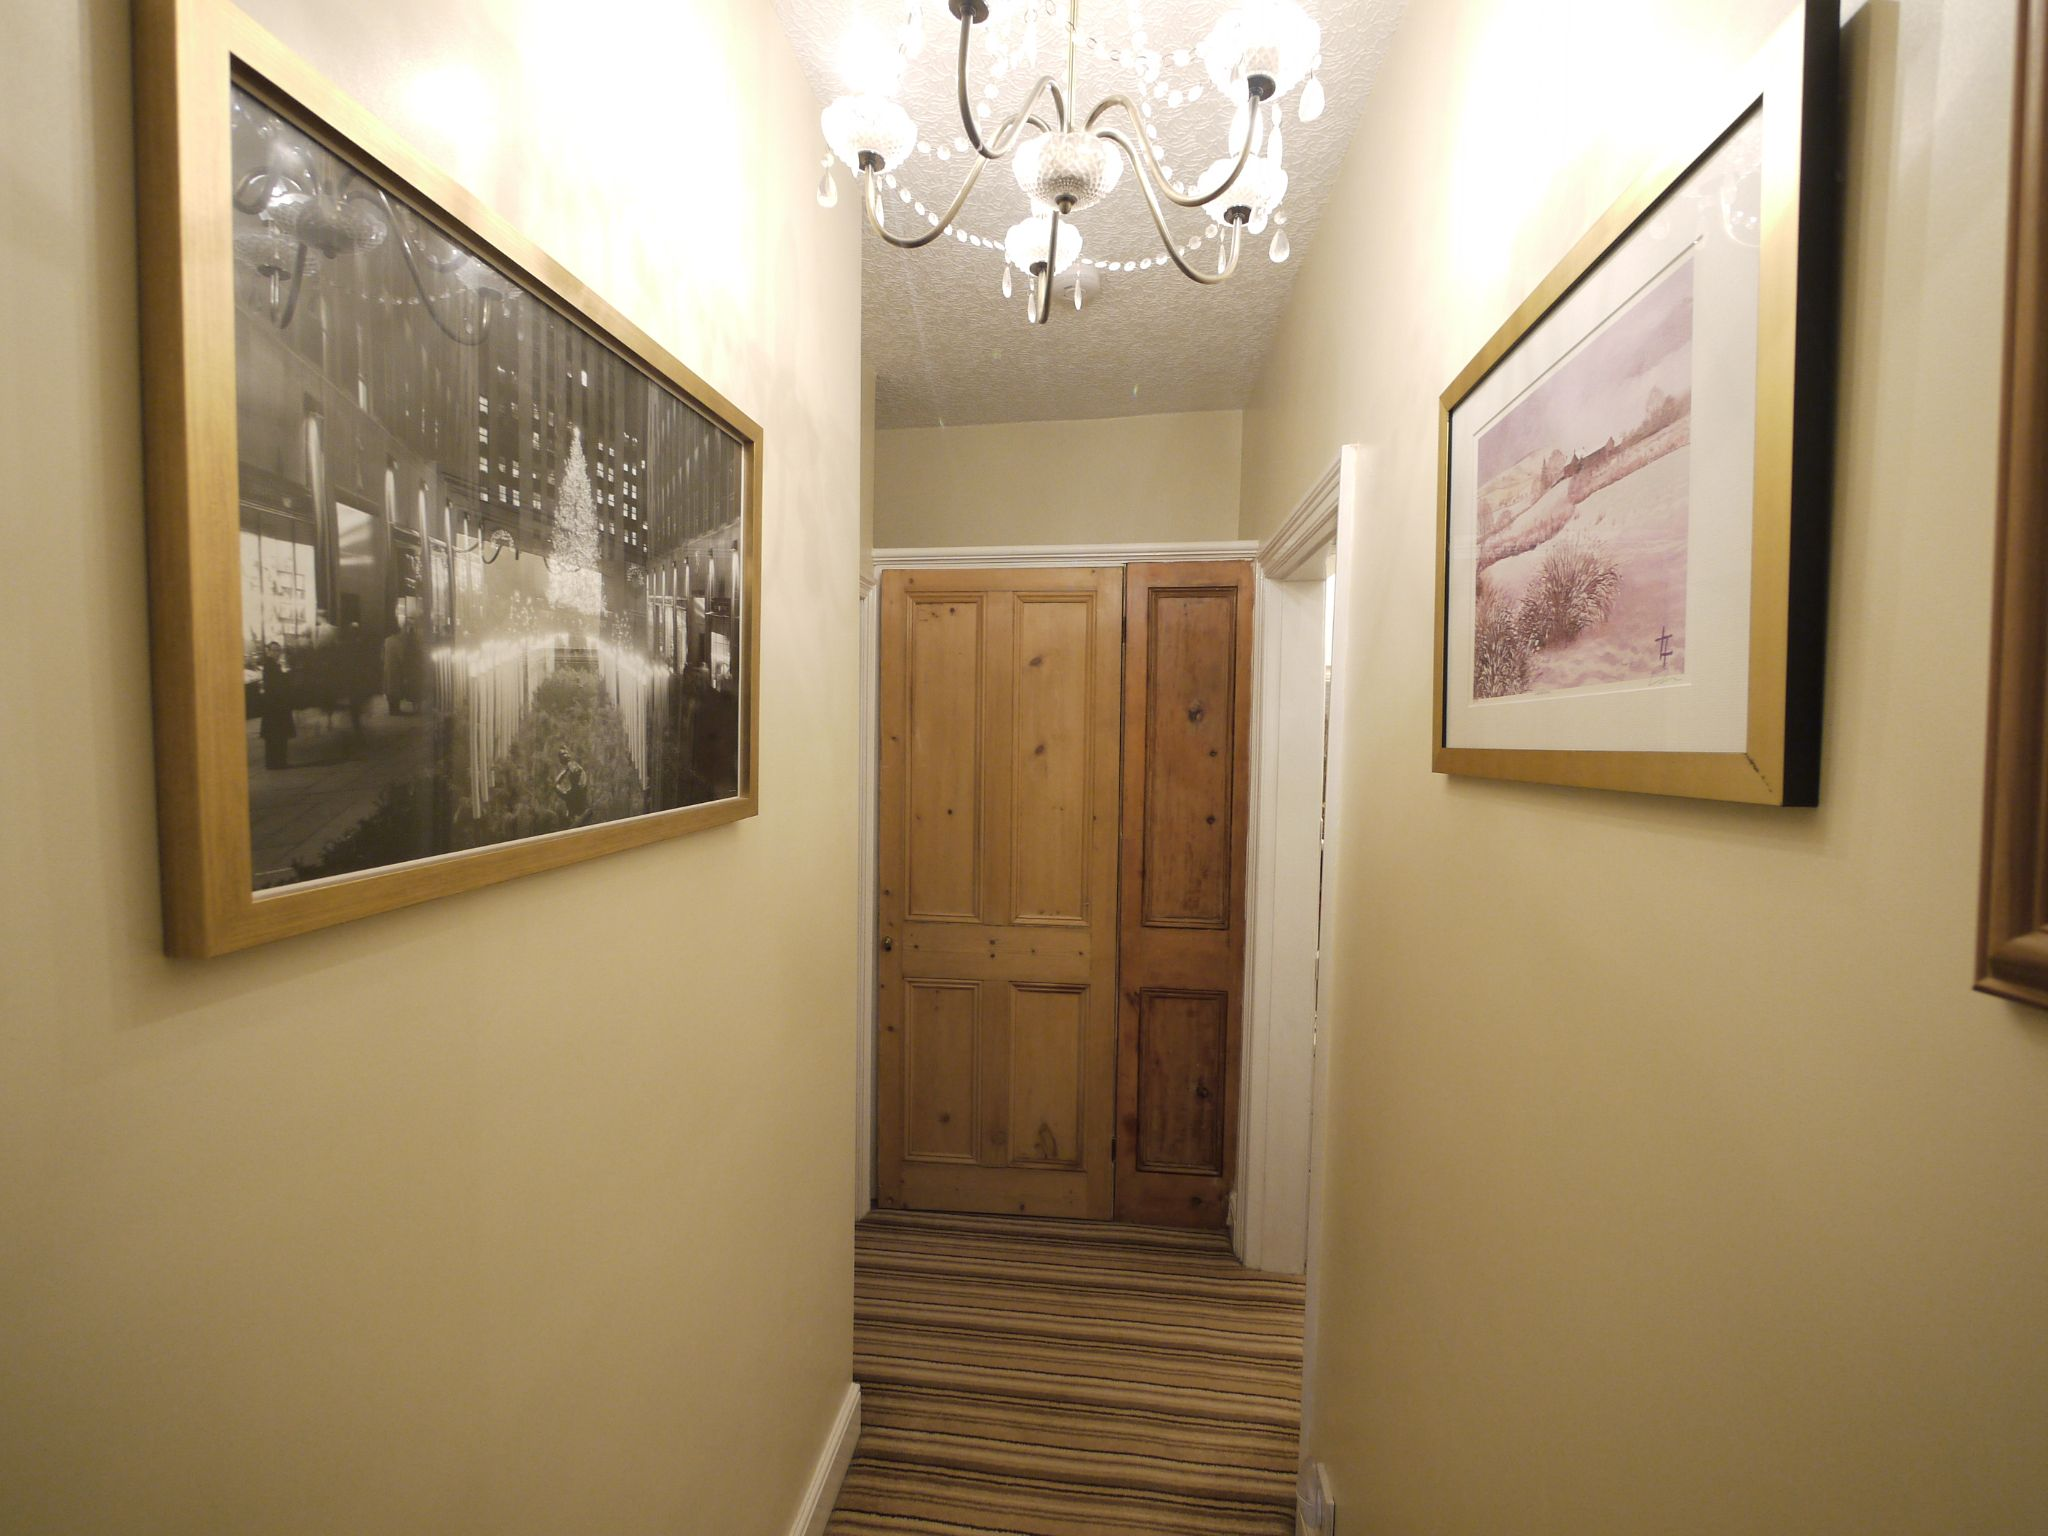 3 bedroom semi-detached house For Sale in Calderdale - Photograph 10.